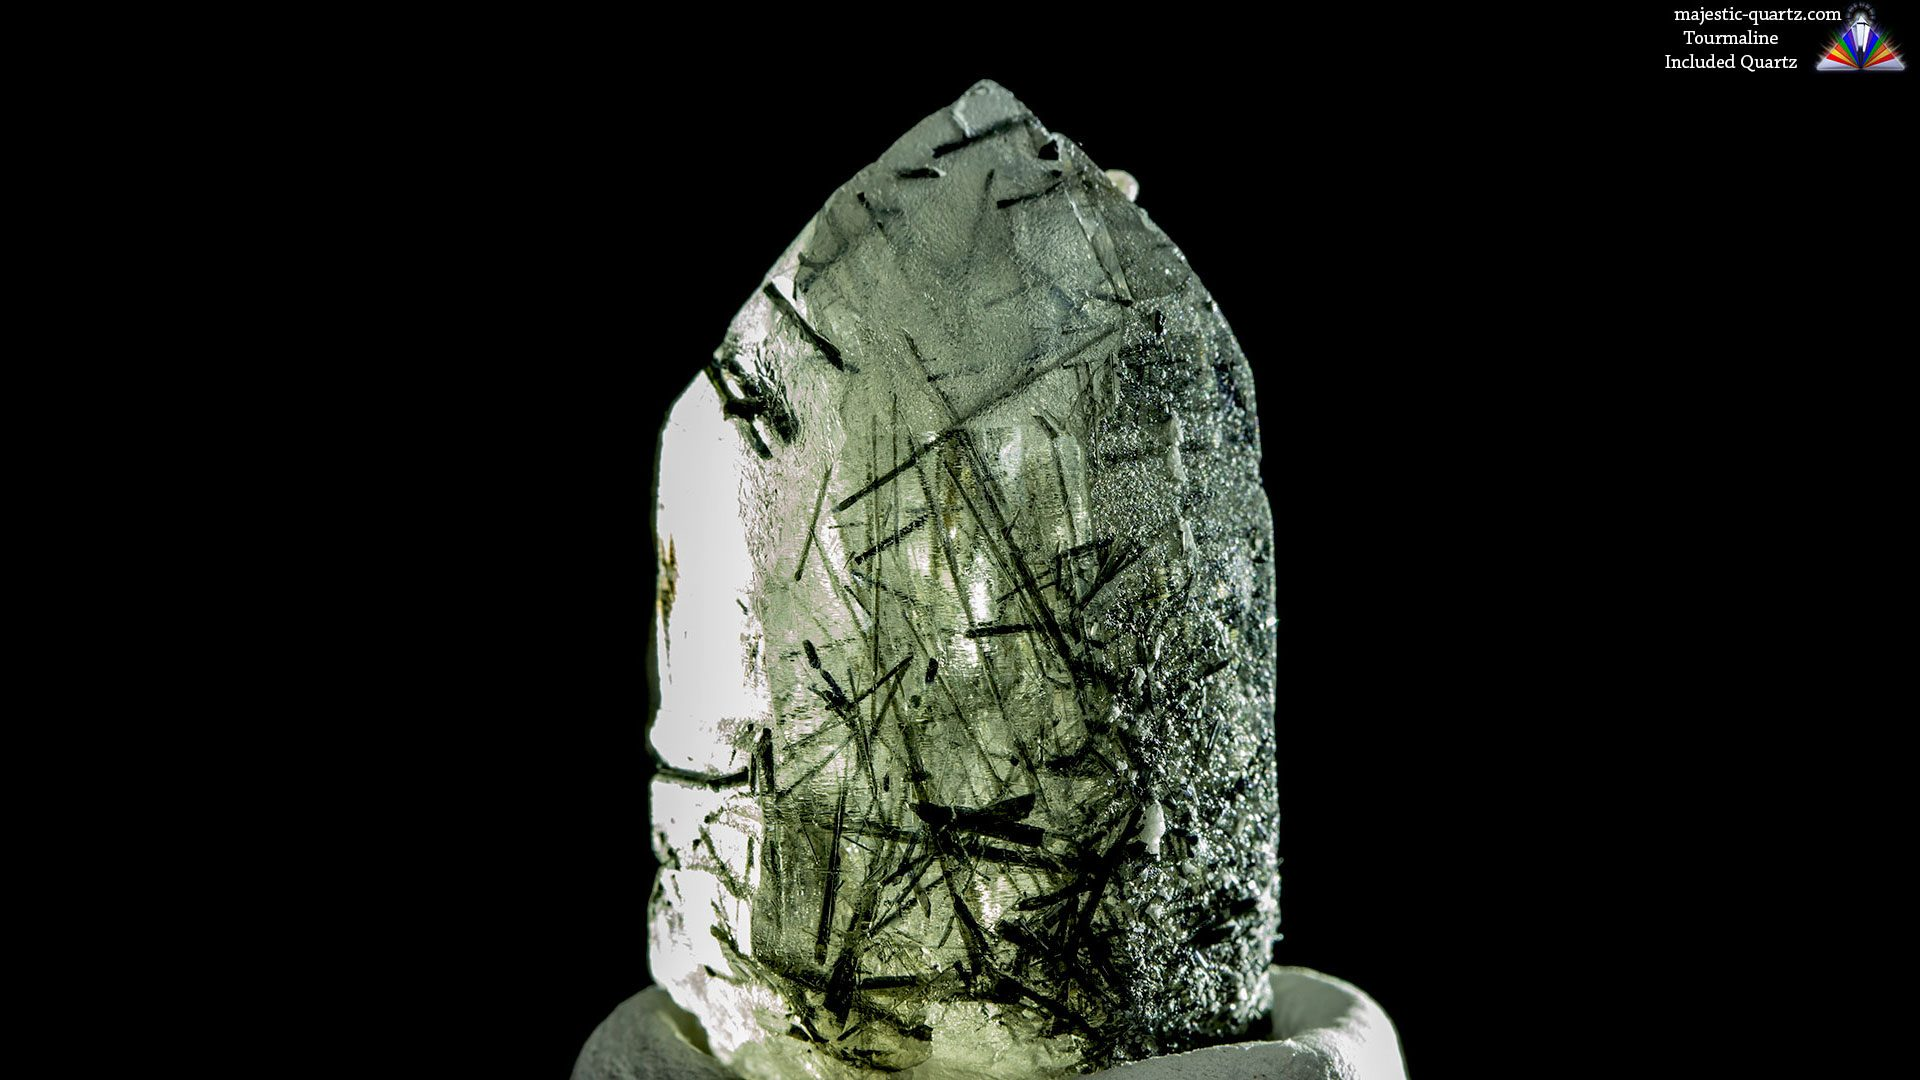 Green Tourmaline Included Quartz Crystal - Photograph by Anthony Bradford